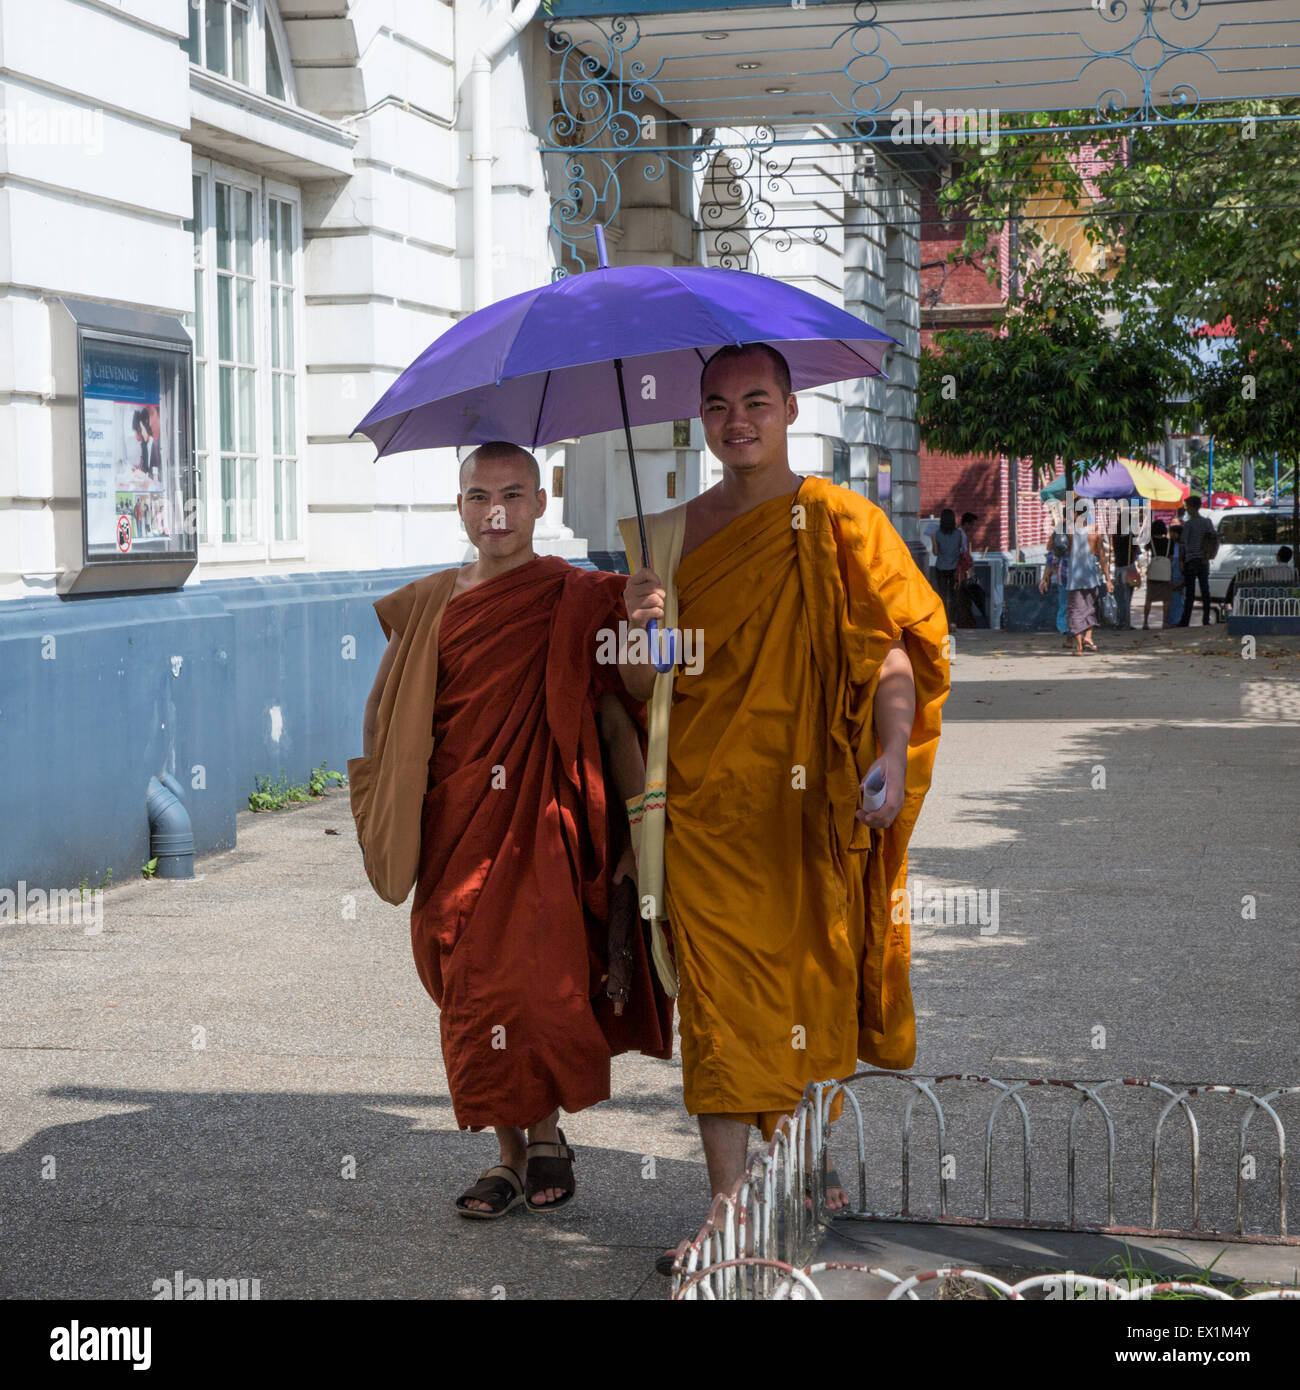 Two Buddhist monks in typical saffron robes walking under a parasol on the Strand in Yangon Myanmar - Stock Image